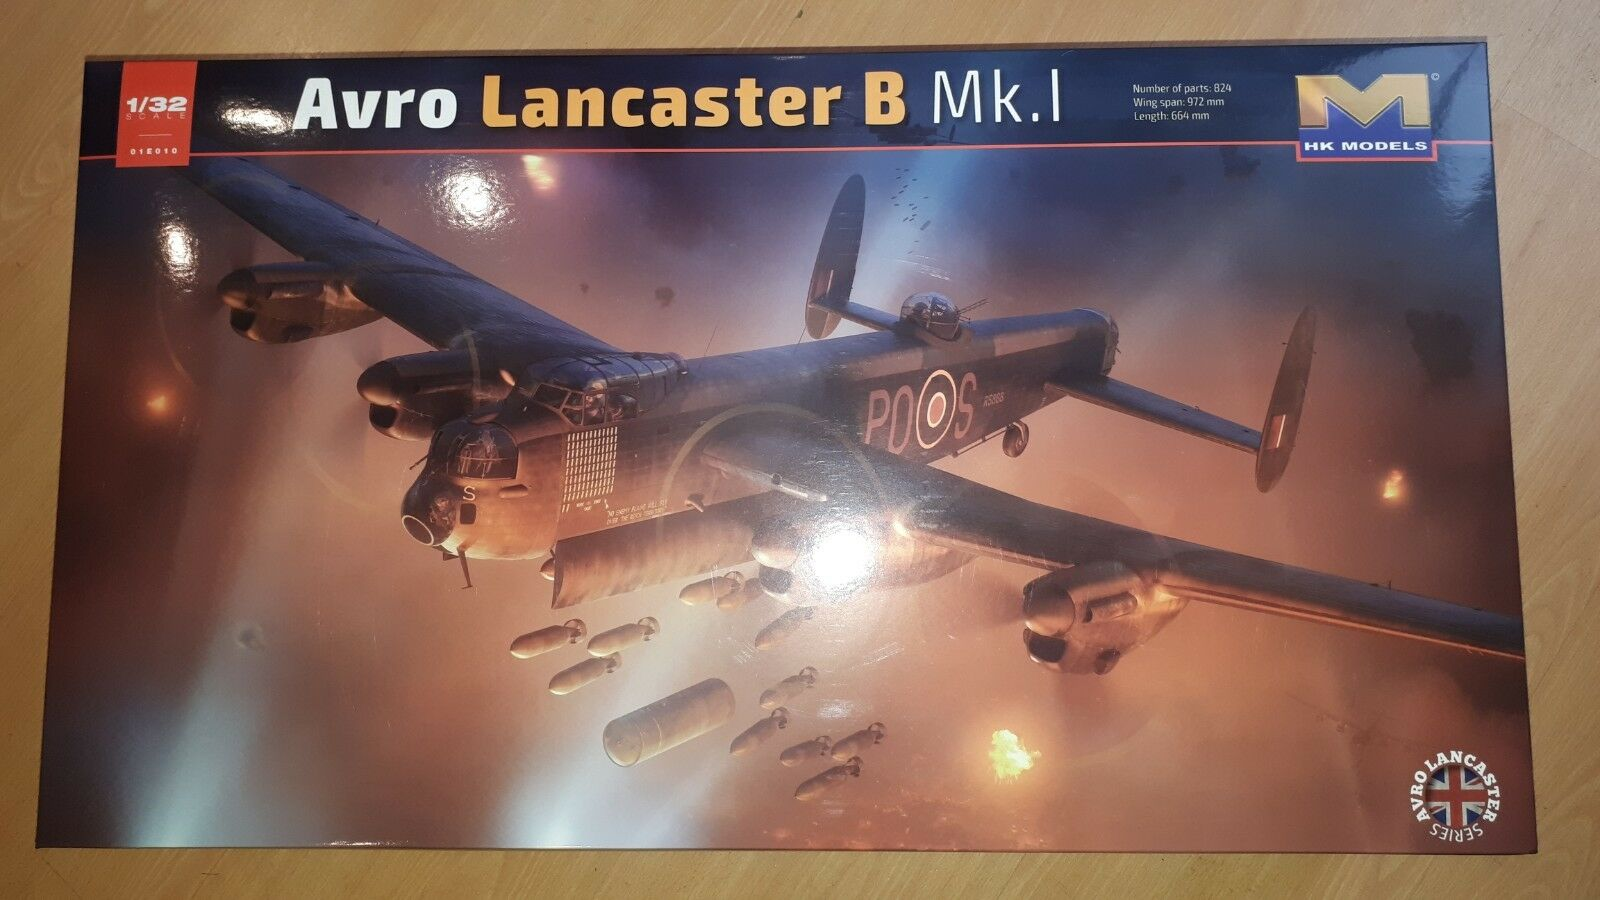 HK MODELS 1 32 AVRO LANCASTER B.I III E10, HIGHLY DETAILED PLASTIC MODEL KIT